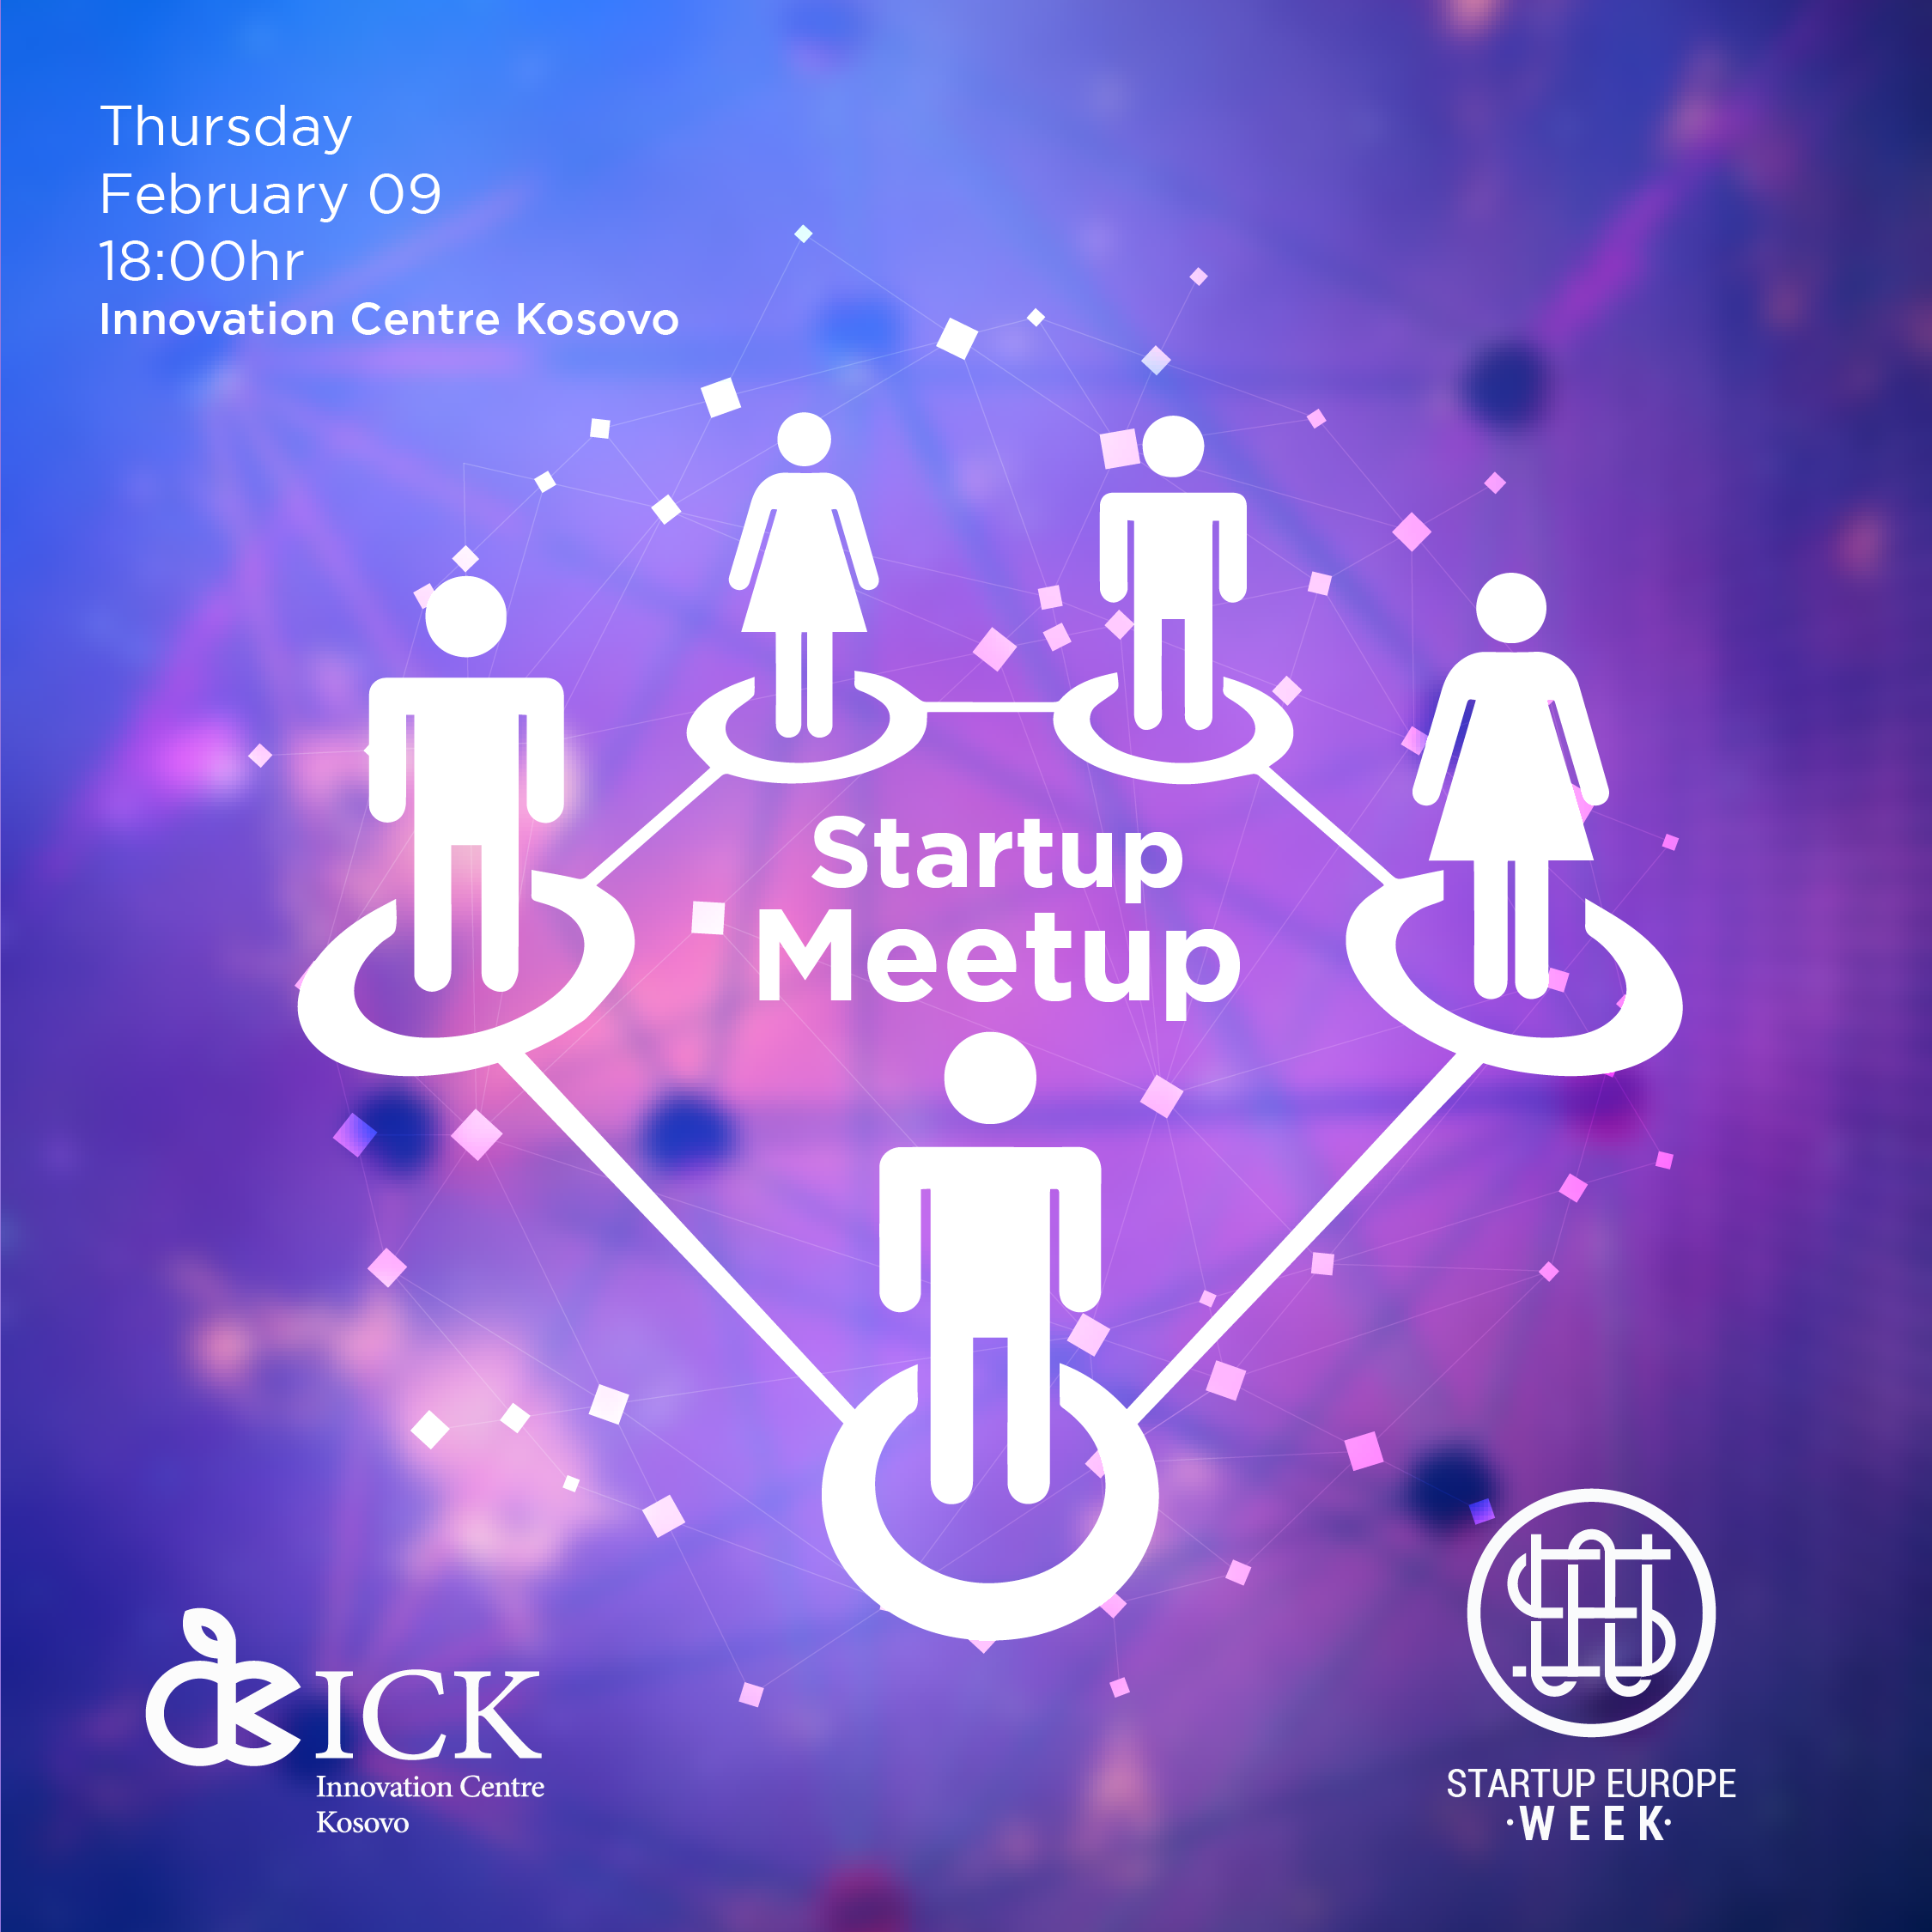 Startup Meetup (and Party)